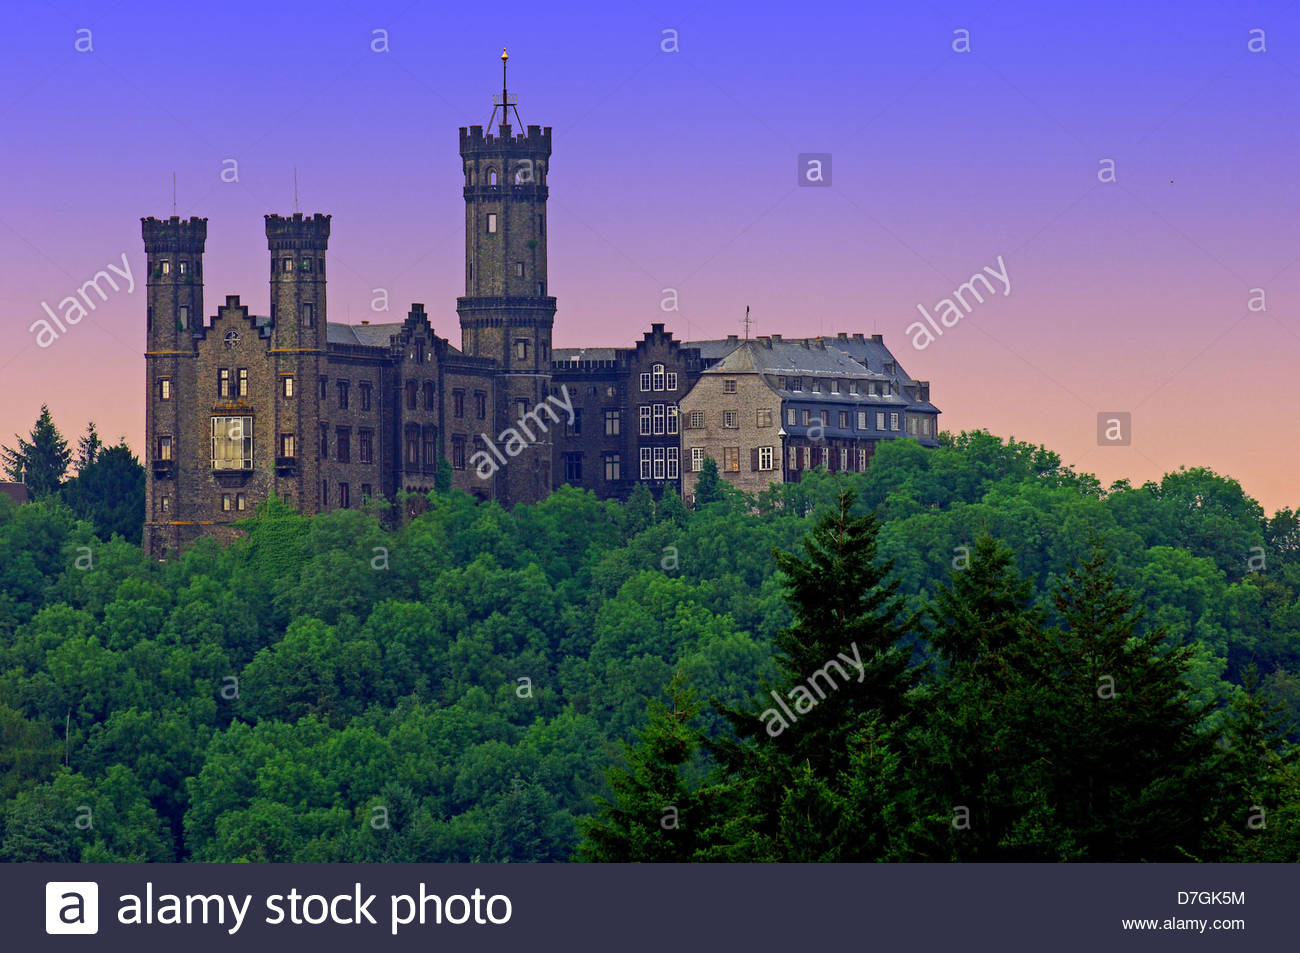 Schloss Kropsburg The Pfalz and Rhine Terrace, Rheinland Pfalz Stock Photos & Rheinland Pfalz Stock Images - Alamy